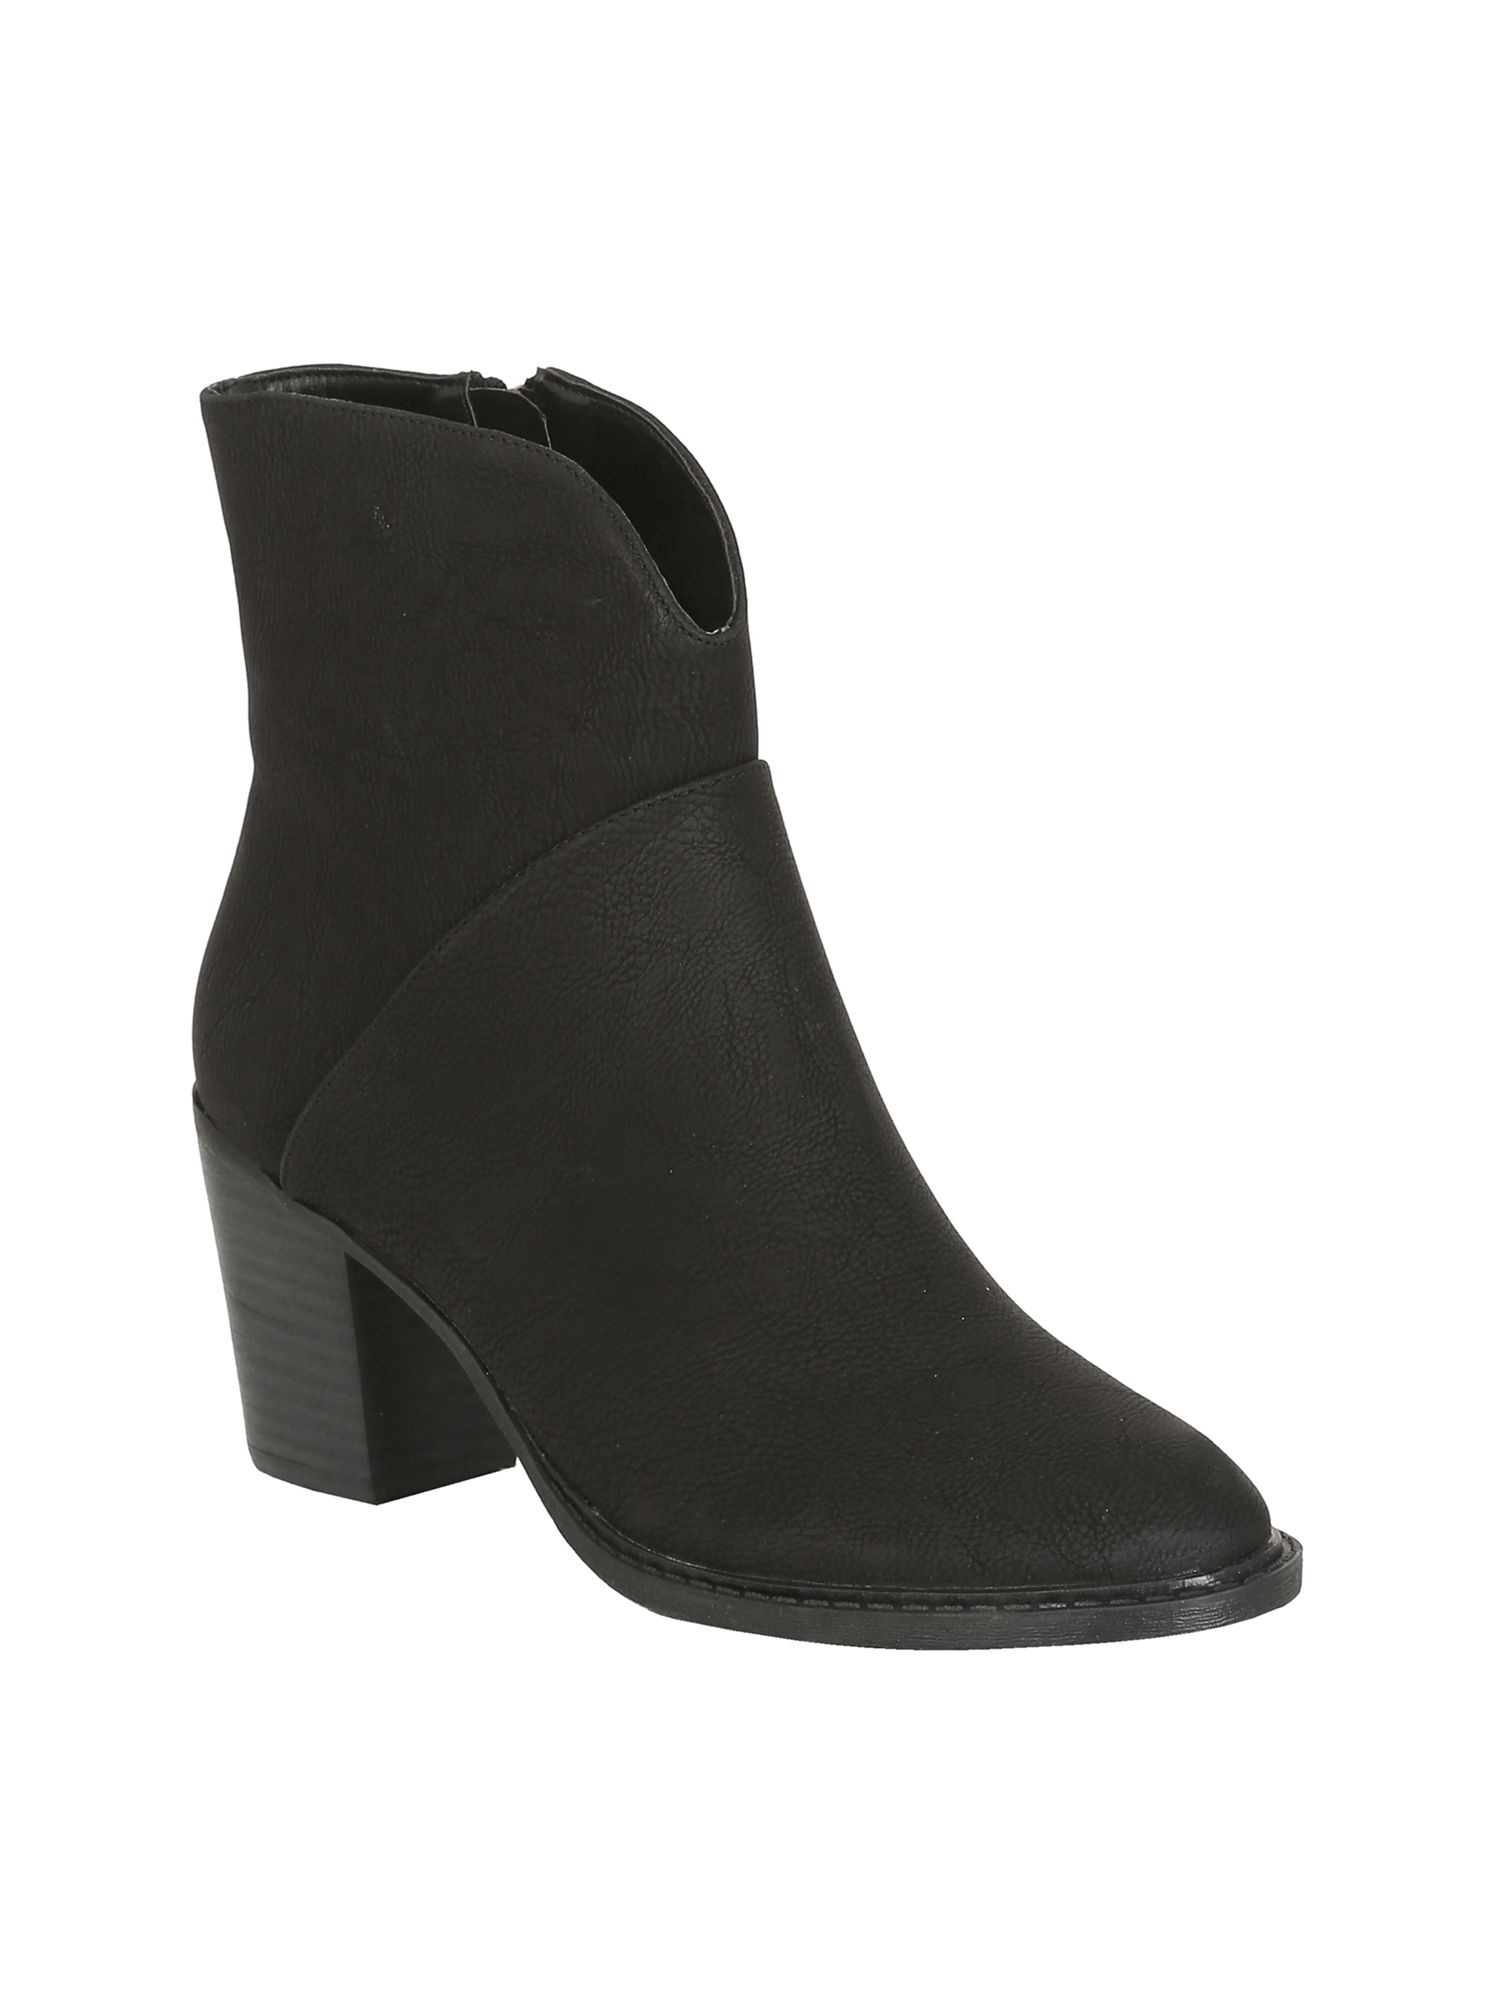 Betsy Betsy Heeled ankle boot, Black